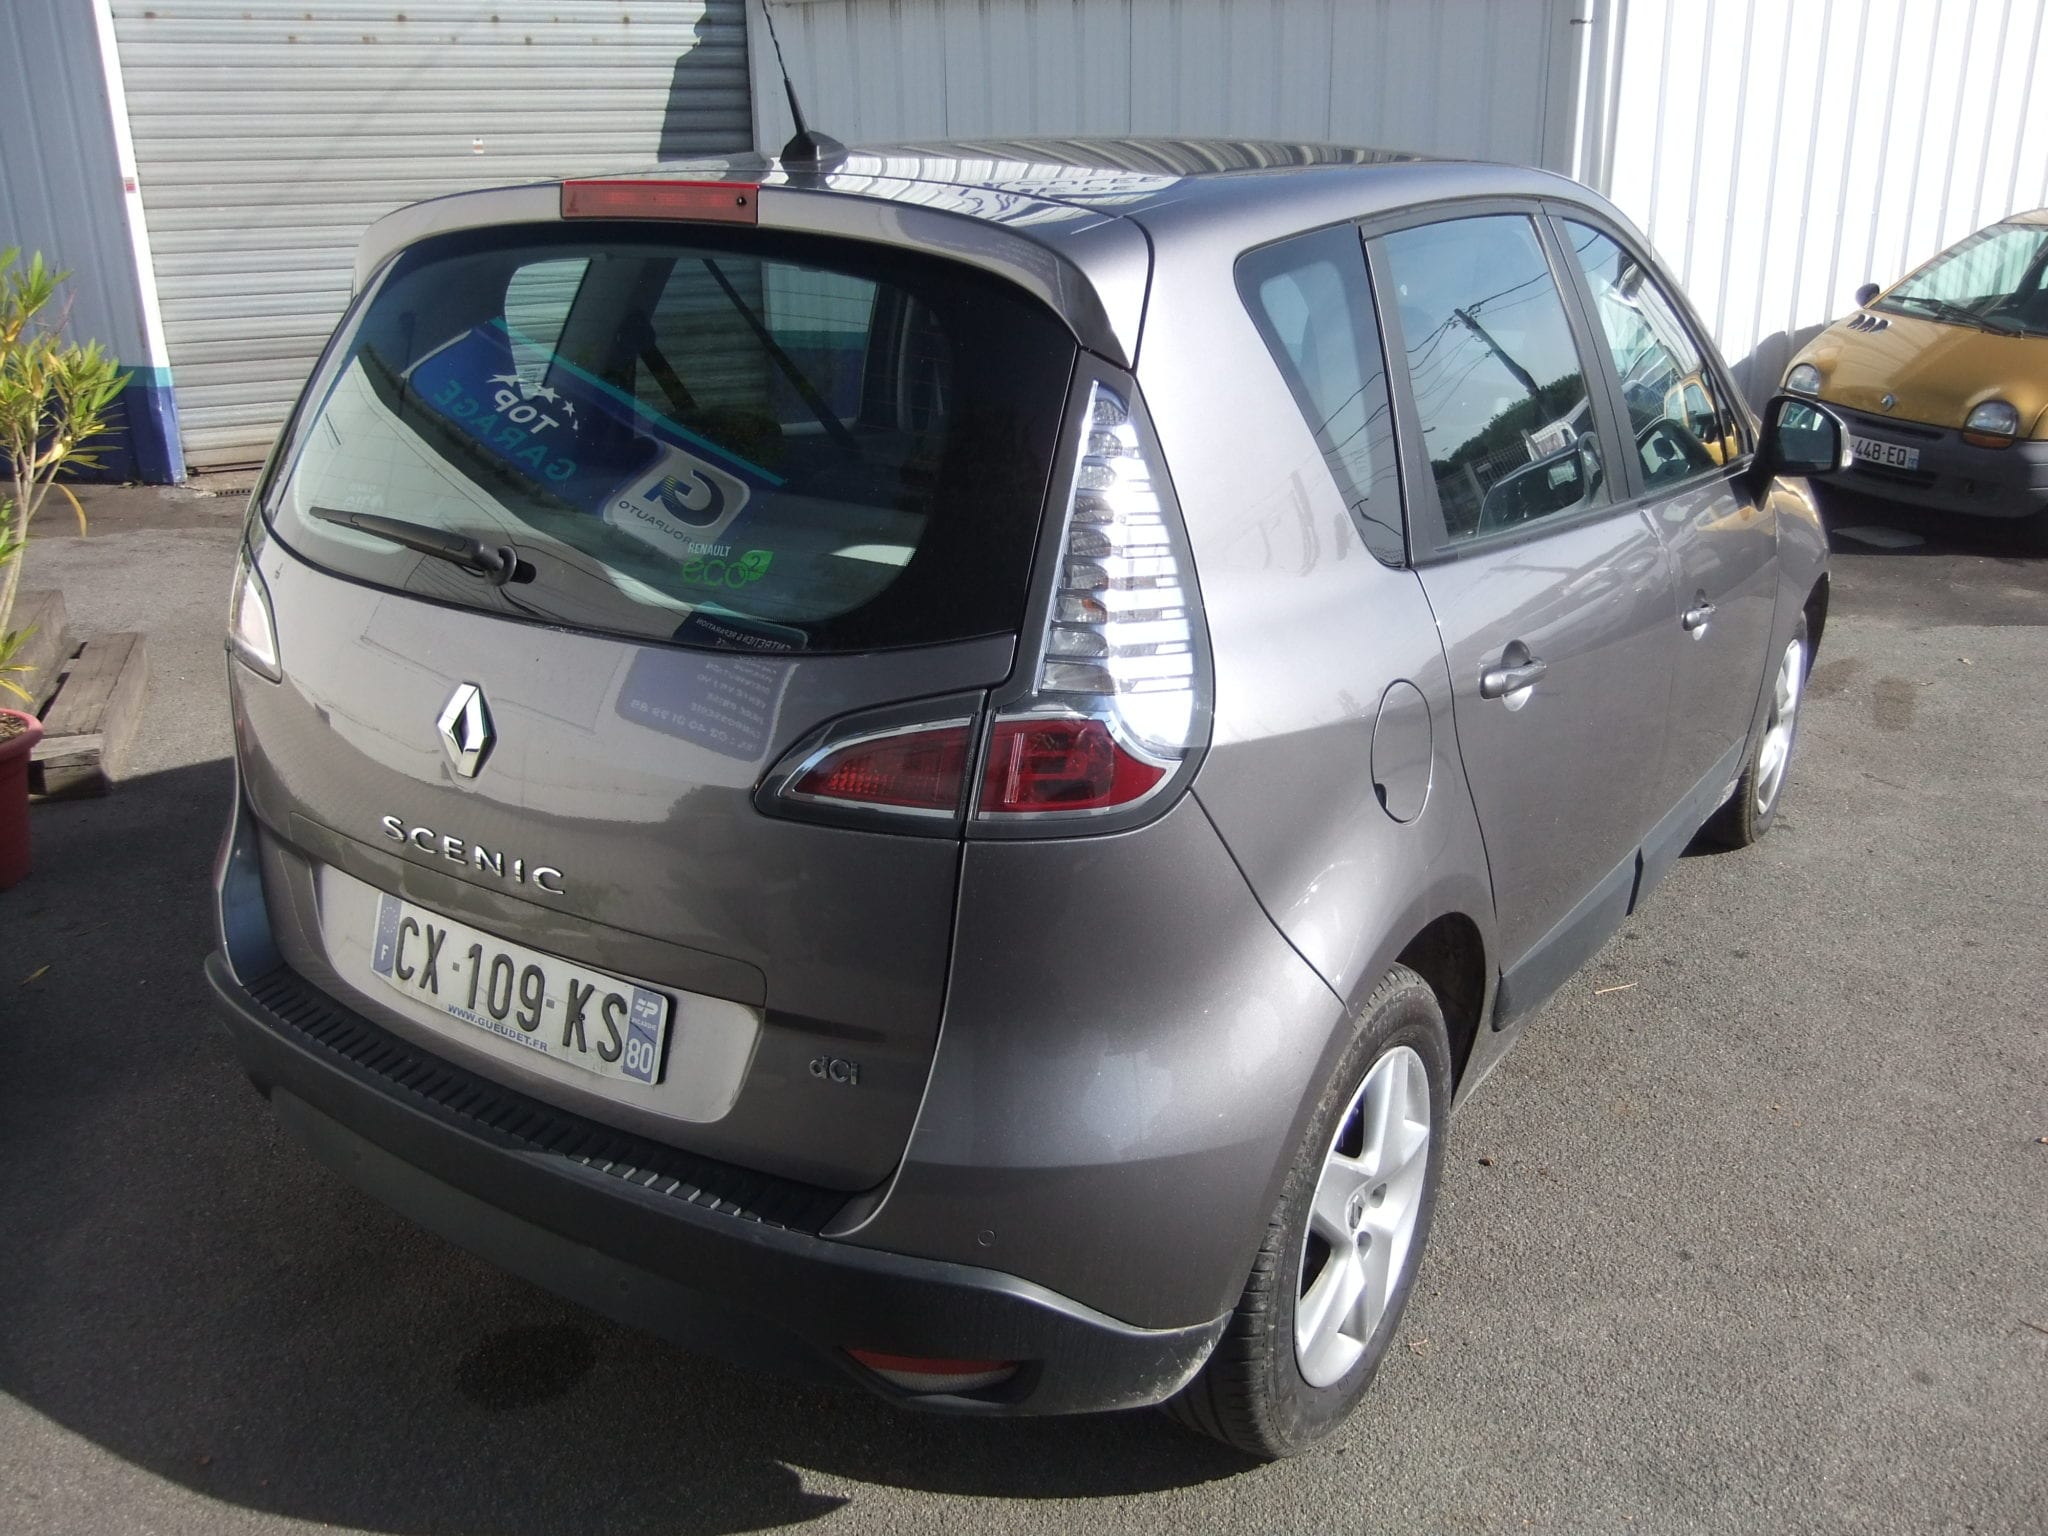 RENAULT SCENIC 3 DCI 110 Energy Business ECO 2  - Image 3